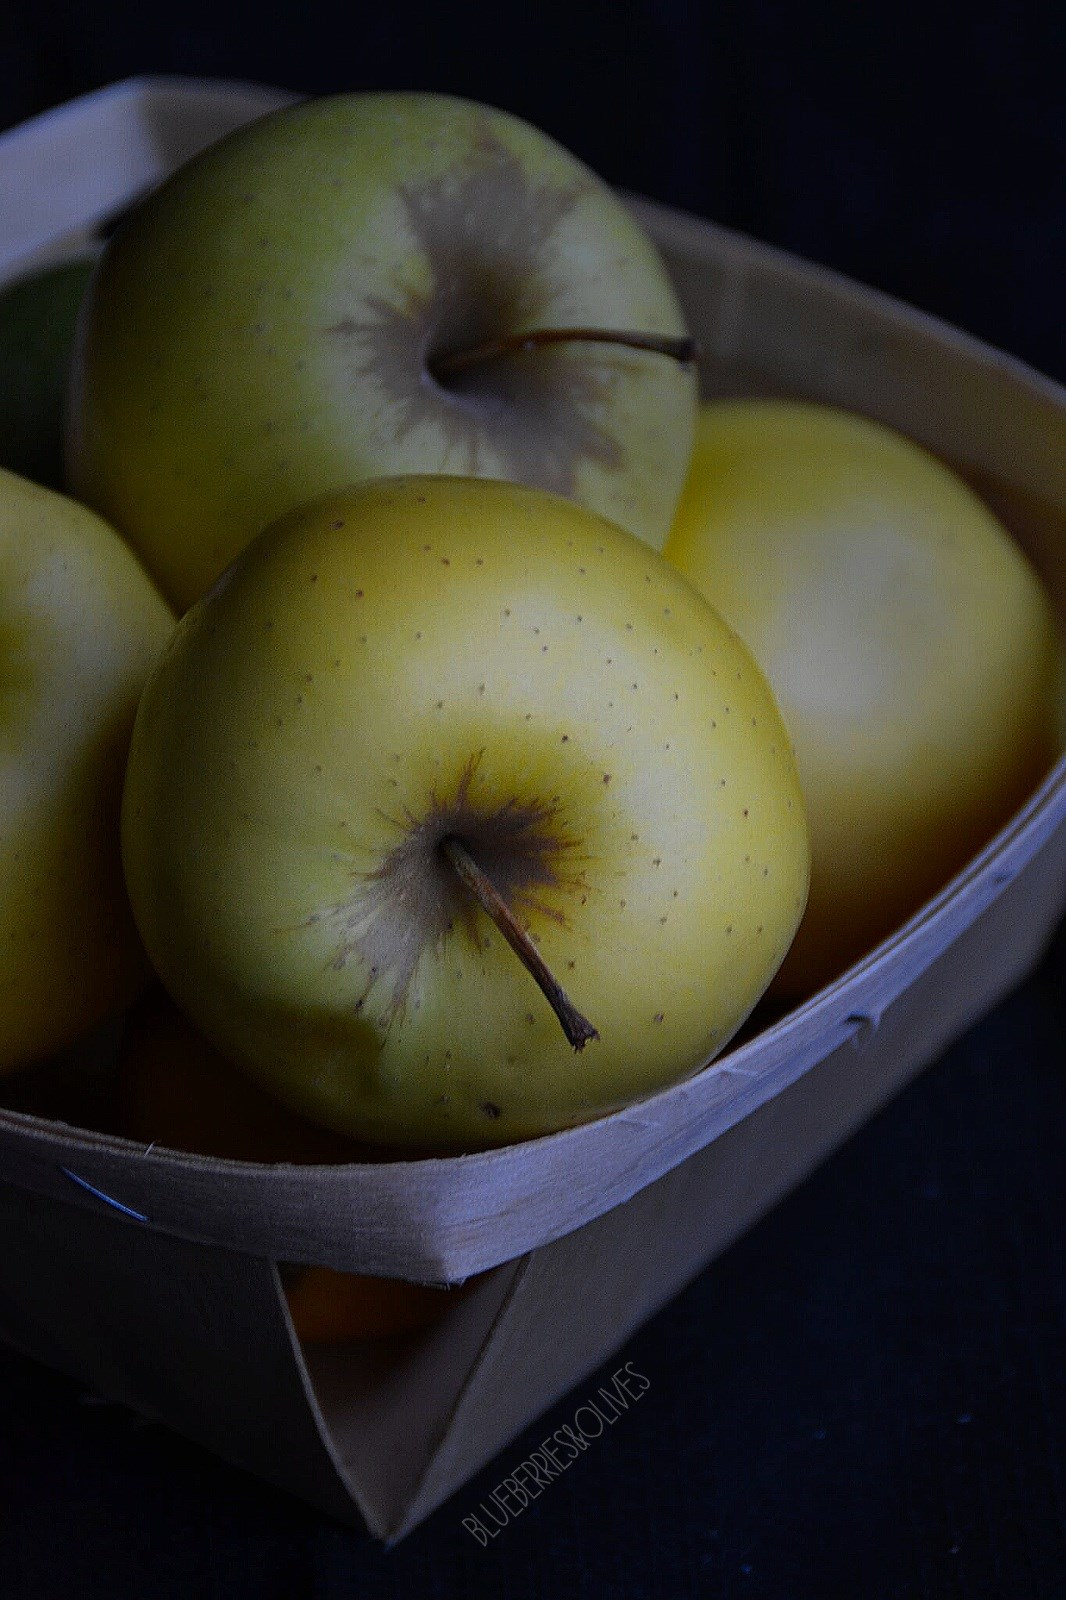 APPLES - GOURMET CHRISTMAS GIFT: APPLE BUTTER (RECIPE + DIY)